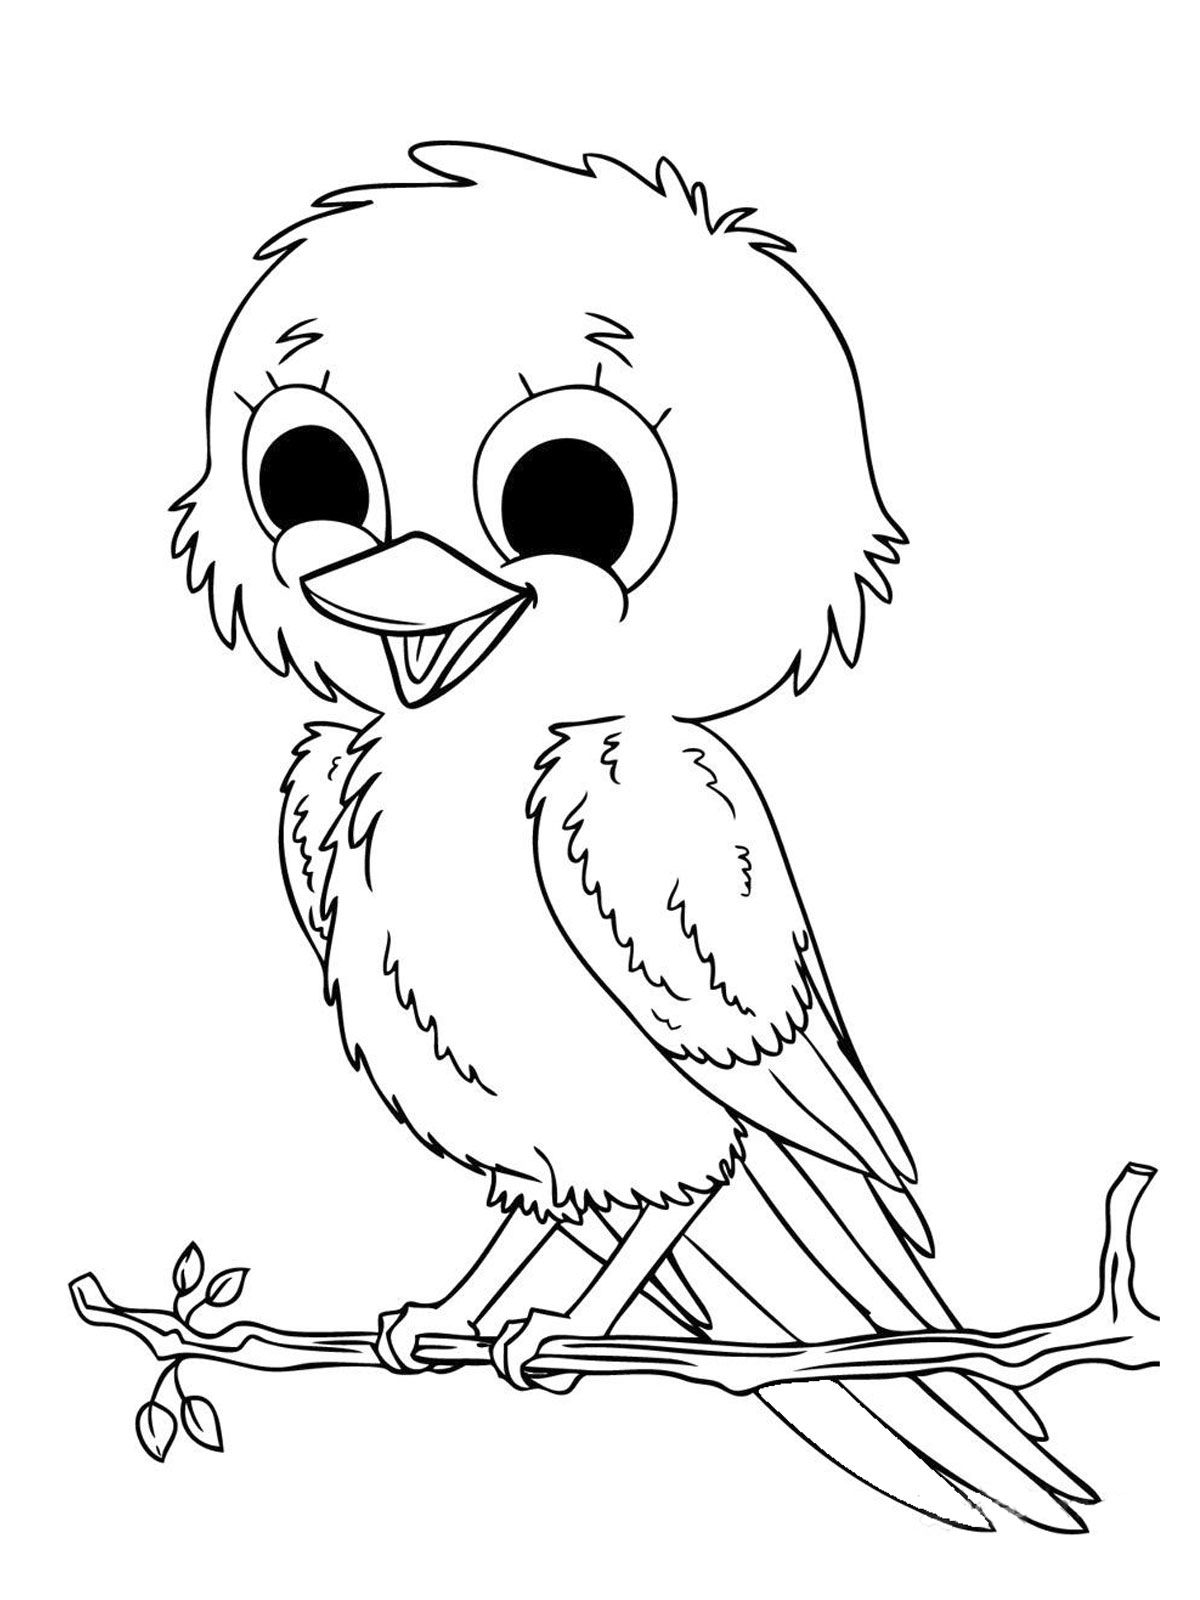 Coloring pitchers of animals - Free Coloring Pages Download All Baby Animals Coloring Pages Below Including Fawn Young